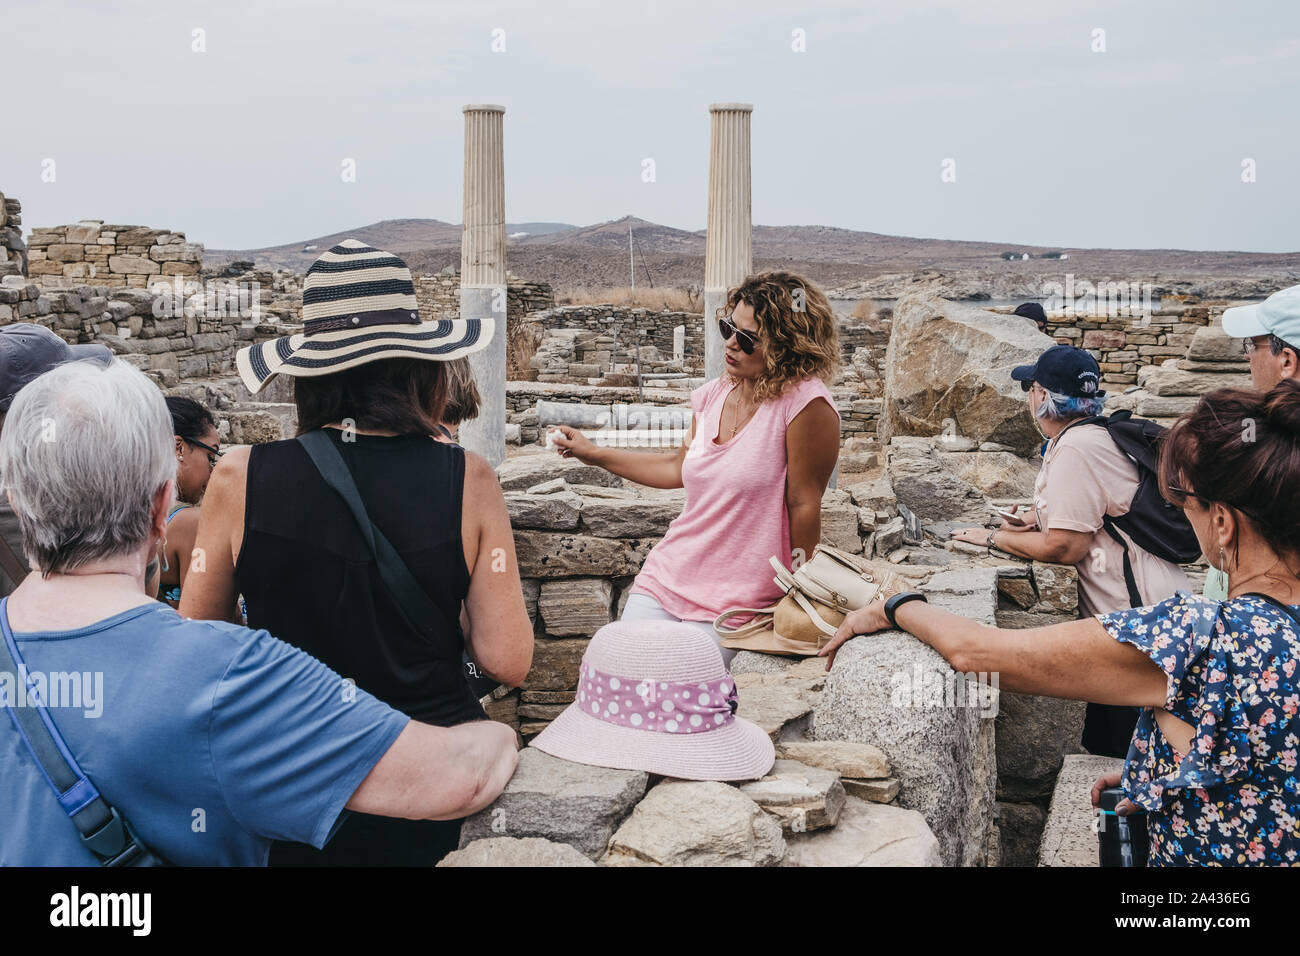 Delos, Greece - September 20, 2019: Tour guide talking to a group of visitors on the Greek island of Delos, archaeological site near Mykonos in the Ae Stock Photo